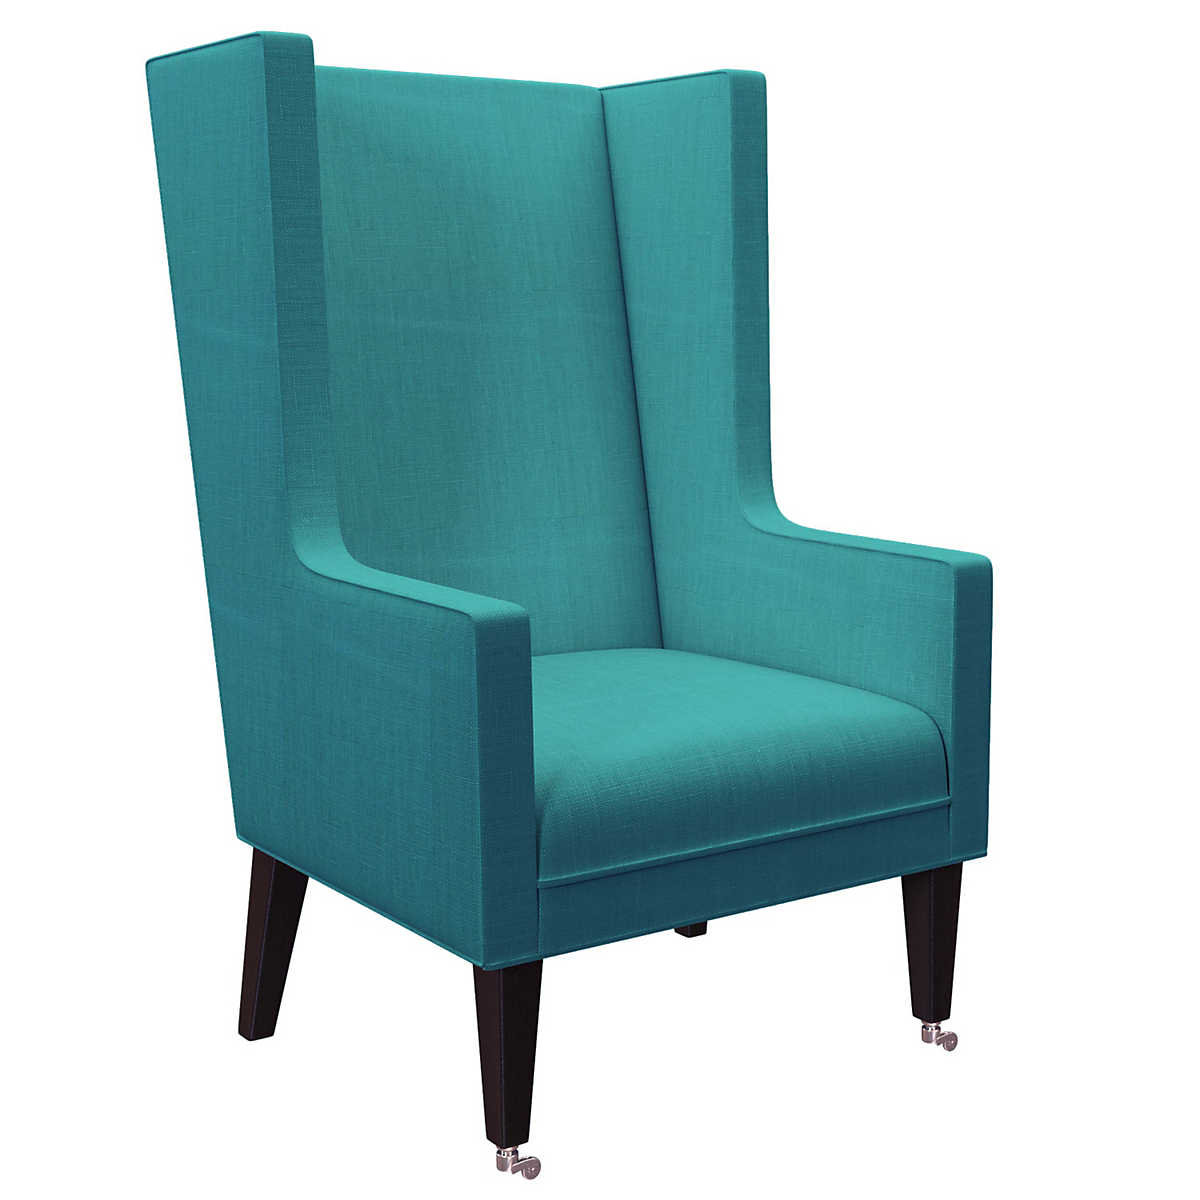 Estate Linen Turquoise Neo Wing Chair Furniture